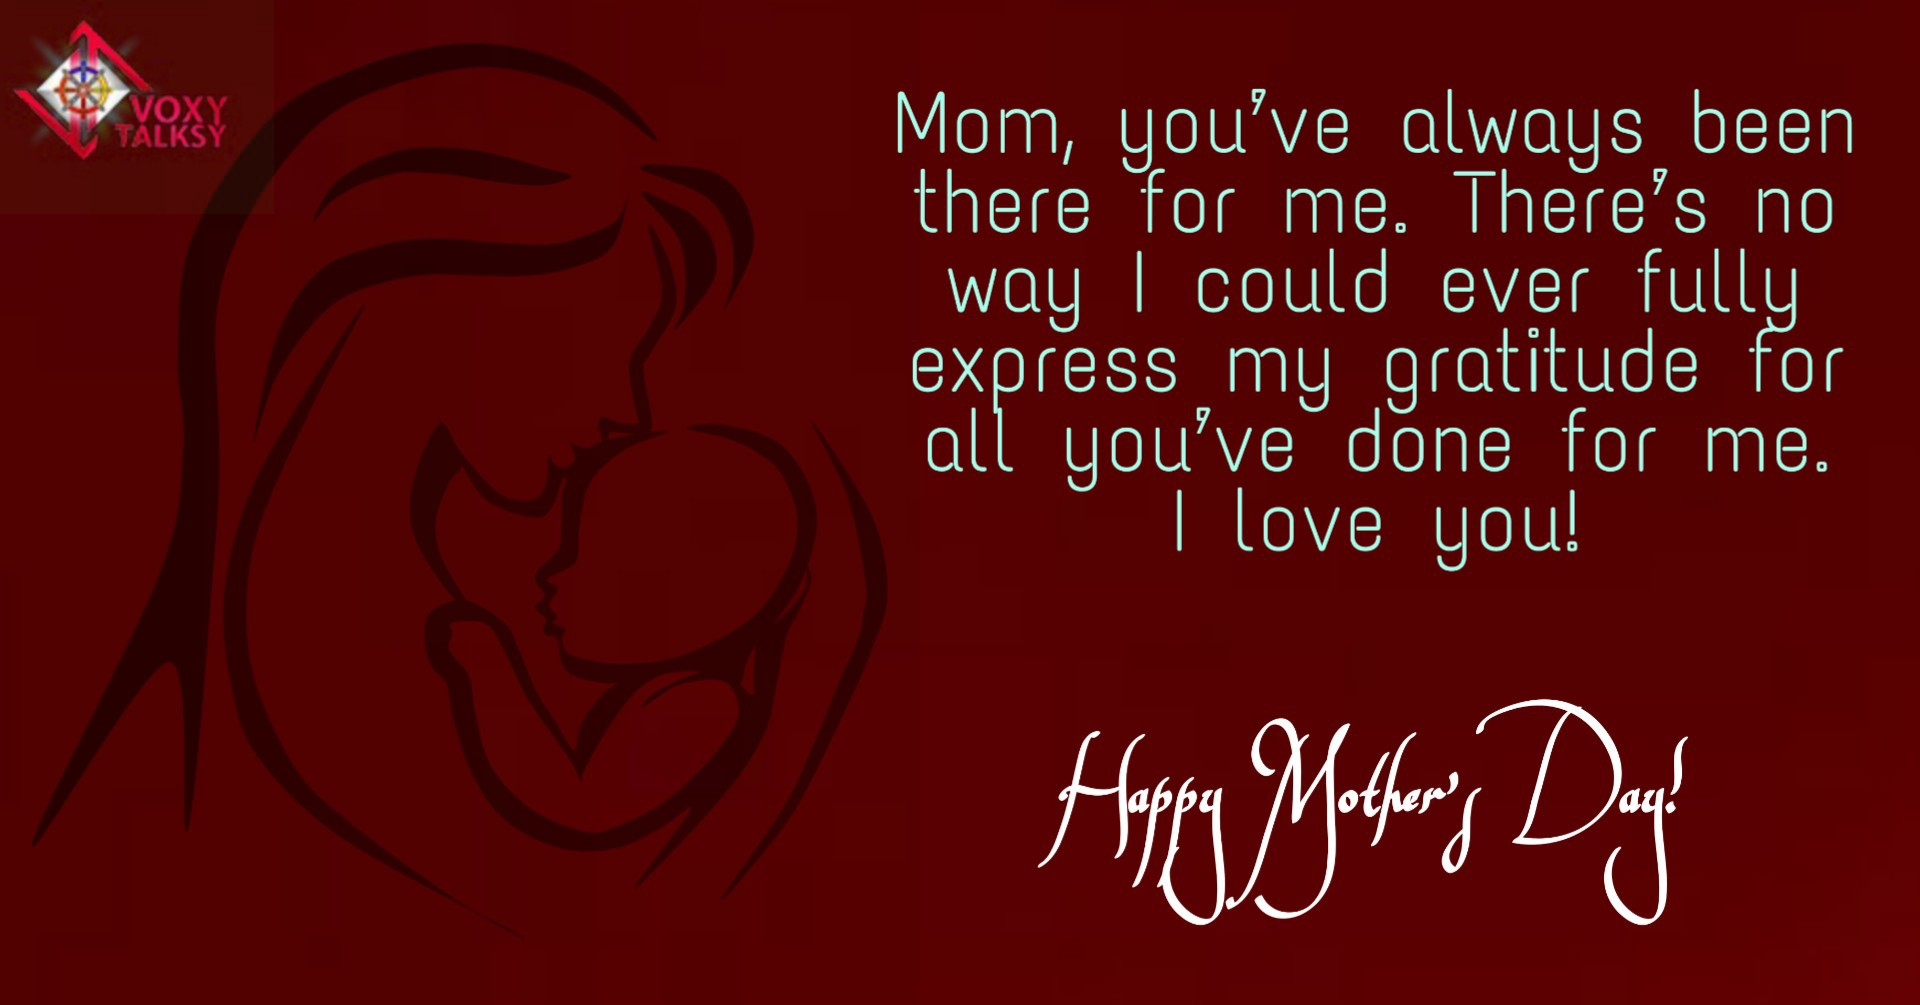 International Mother's Day Greetings 2020 | Moms | VoxyTalksy